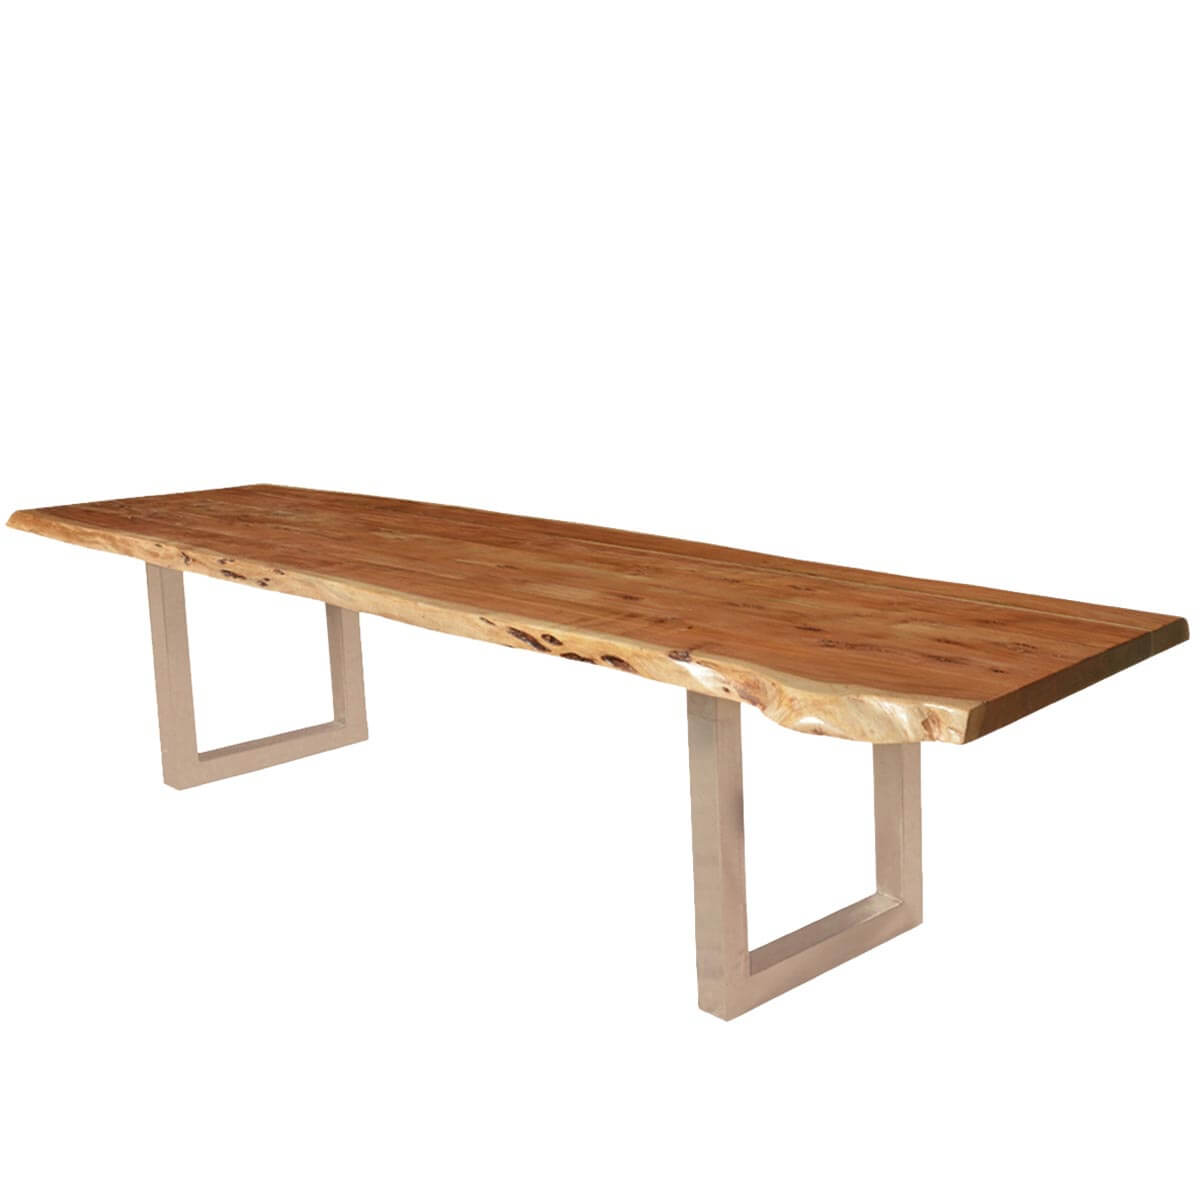 Living Edge Dining Table Modern Frontier Acacia Wood Iron